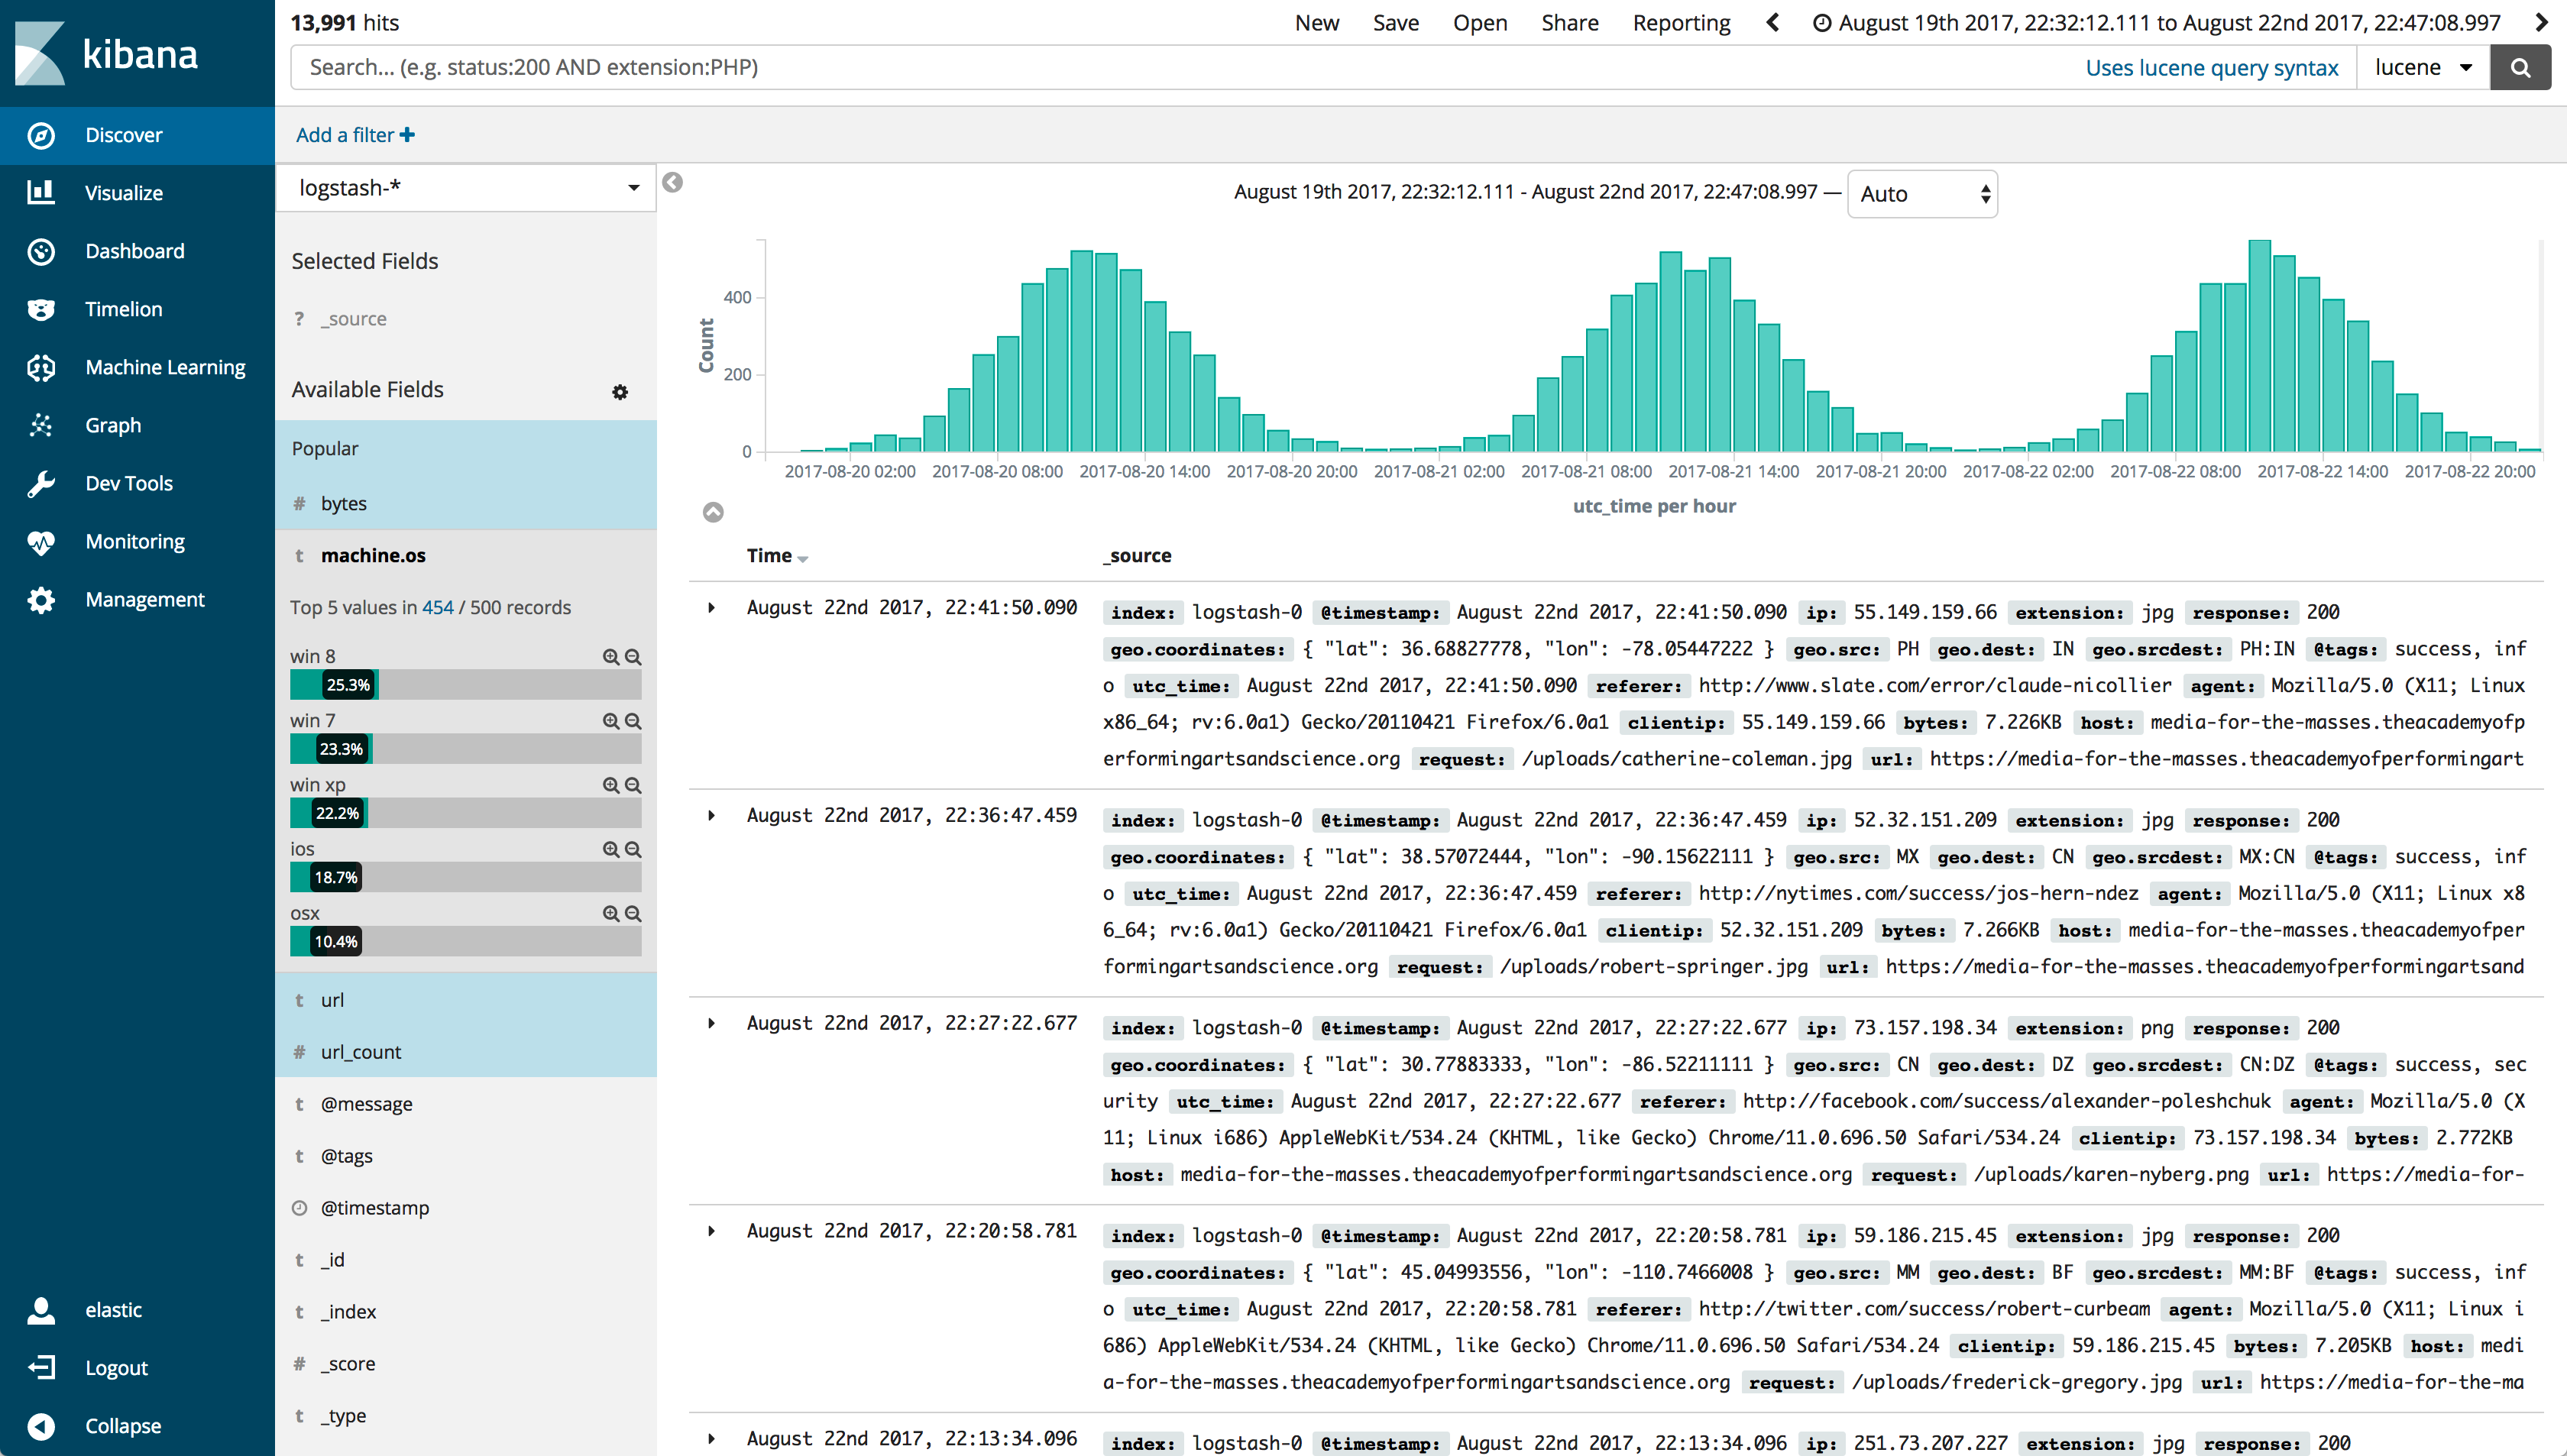 A screenshot showing the new Kibana 6 color scheme with a better contrast